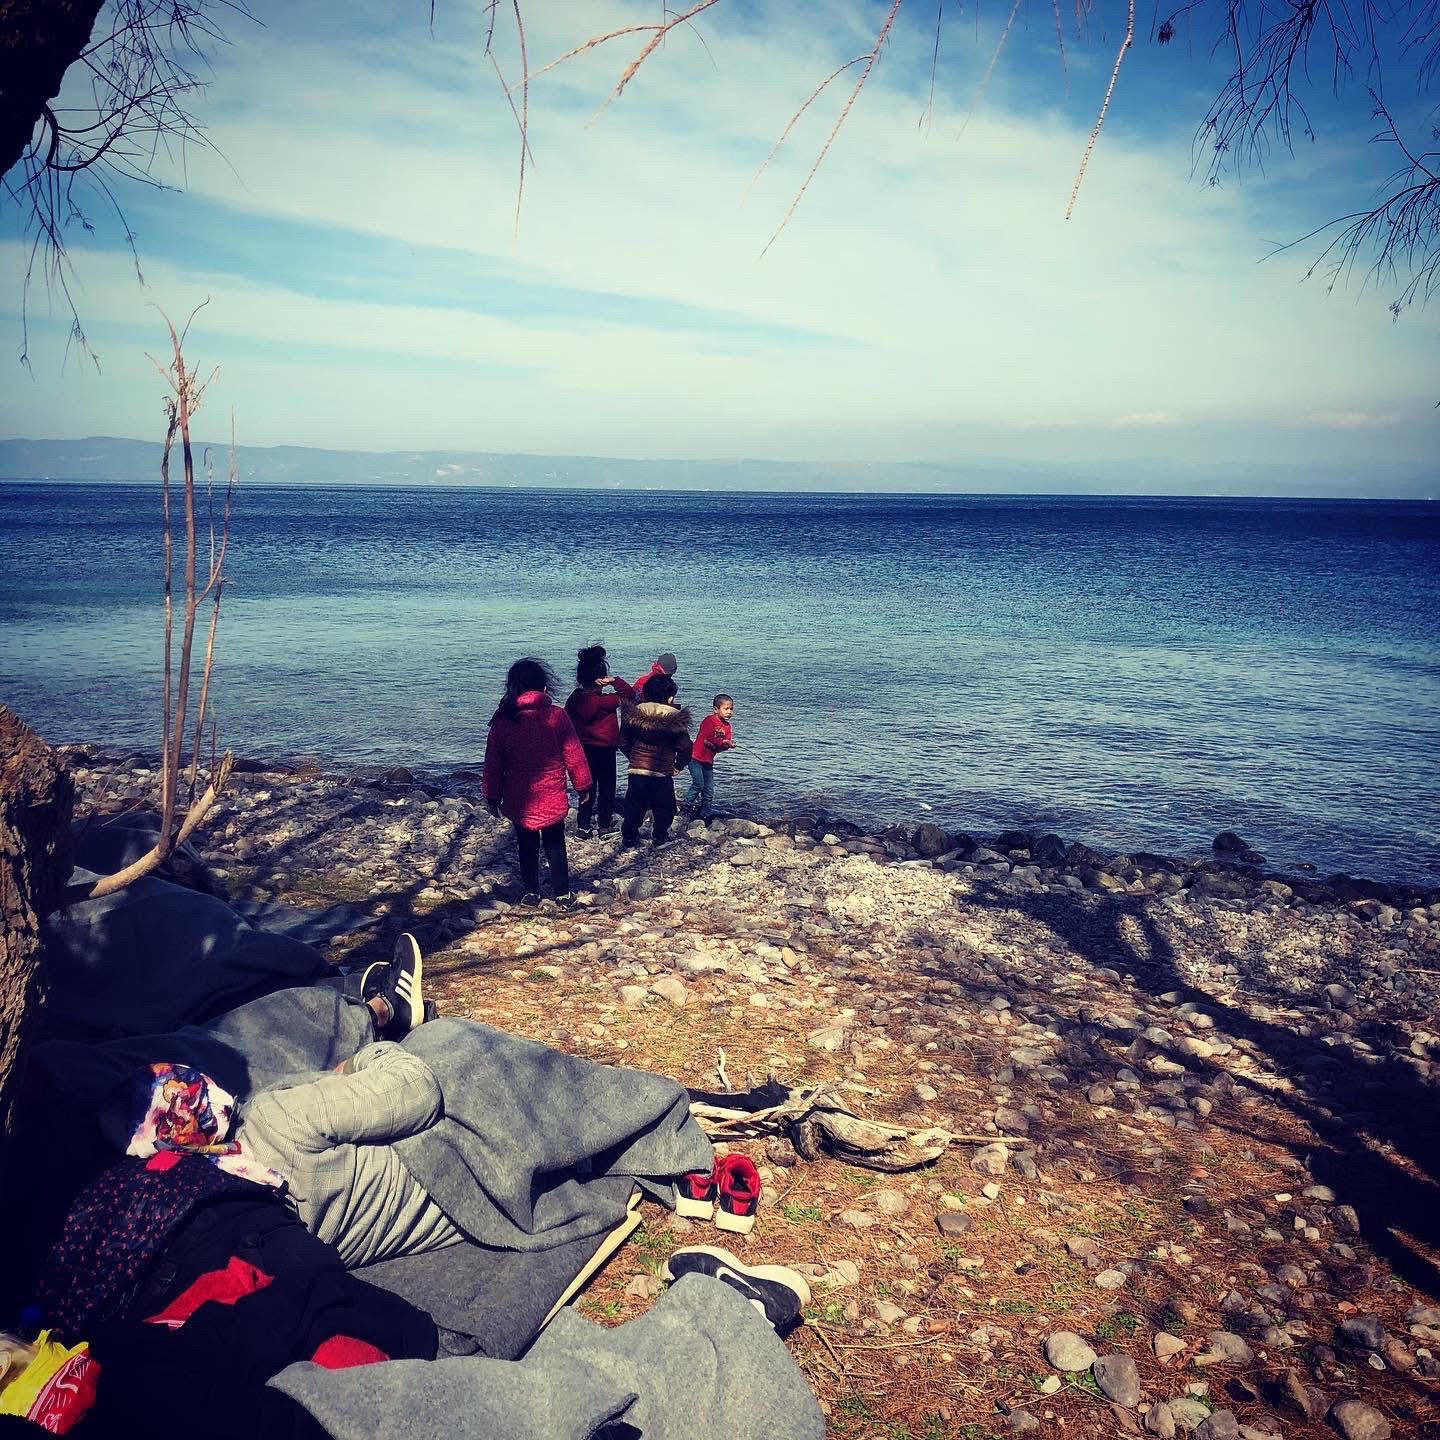 Migrants gather on the island of Lesbos, Greece, March 2020